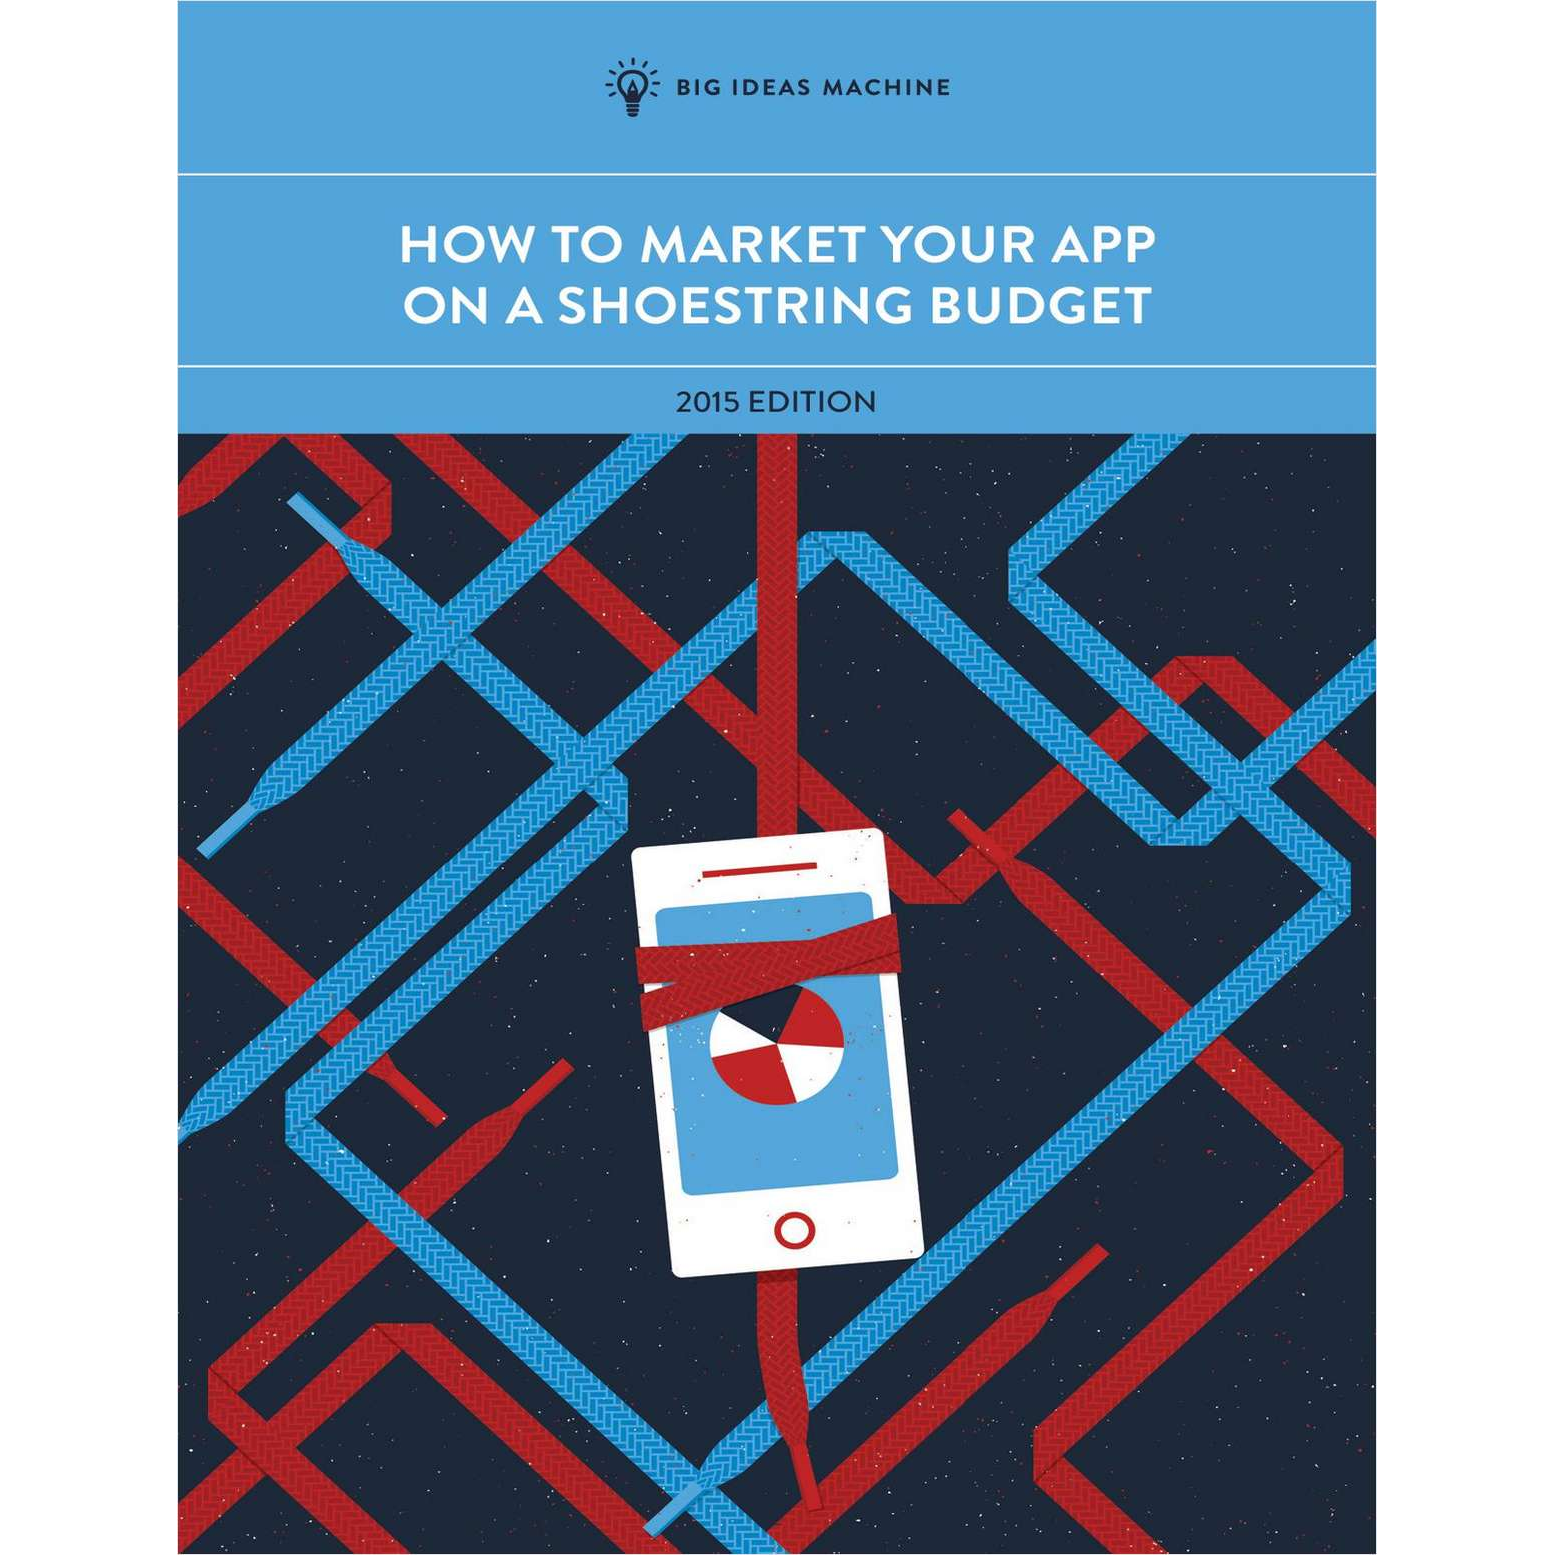 How to Market Your App on a Shoestring Budget Screenshot